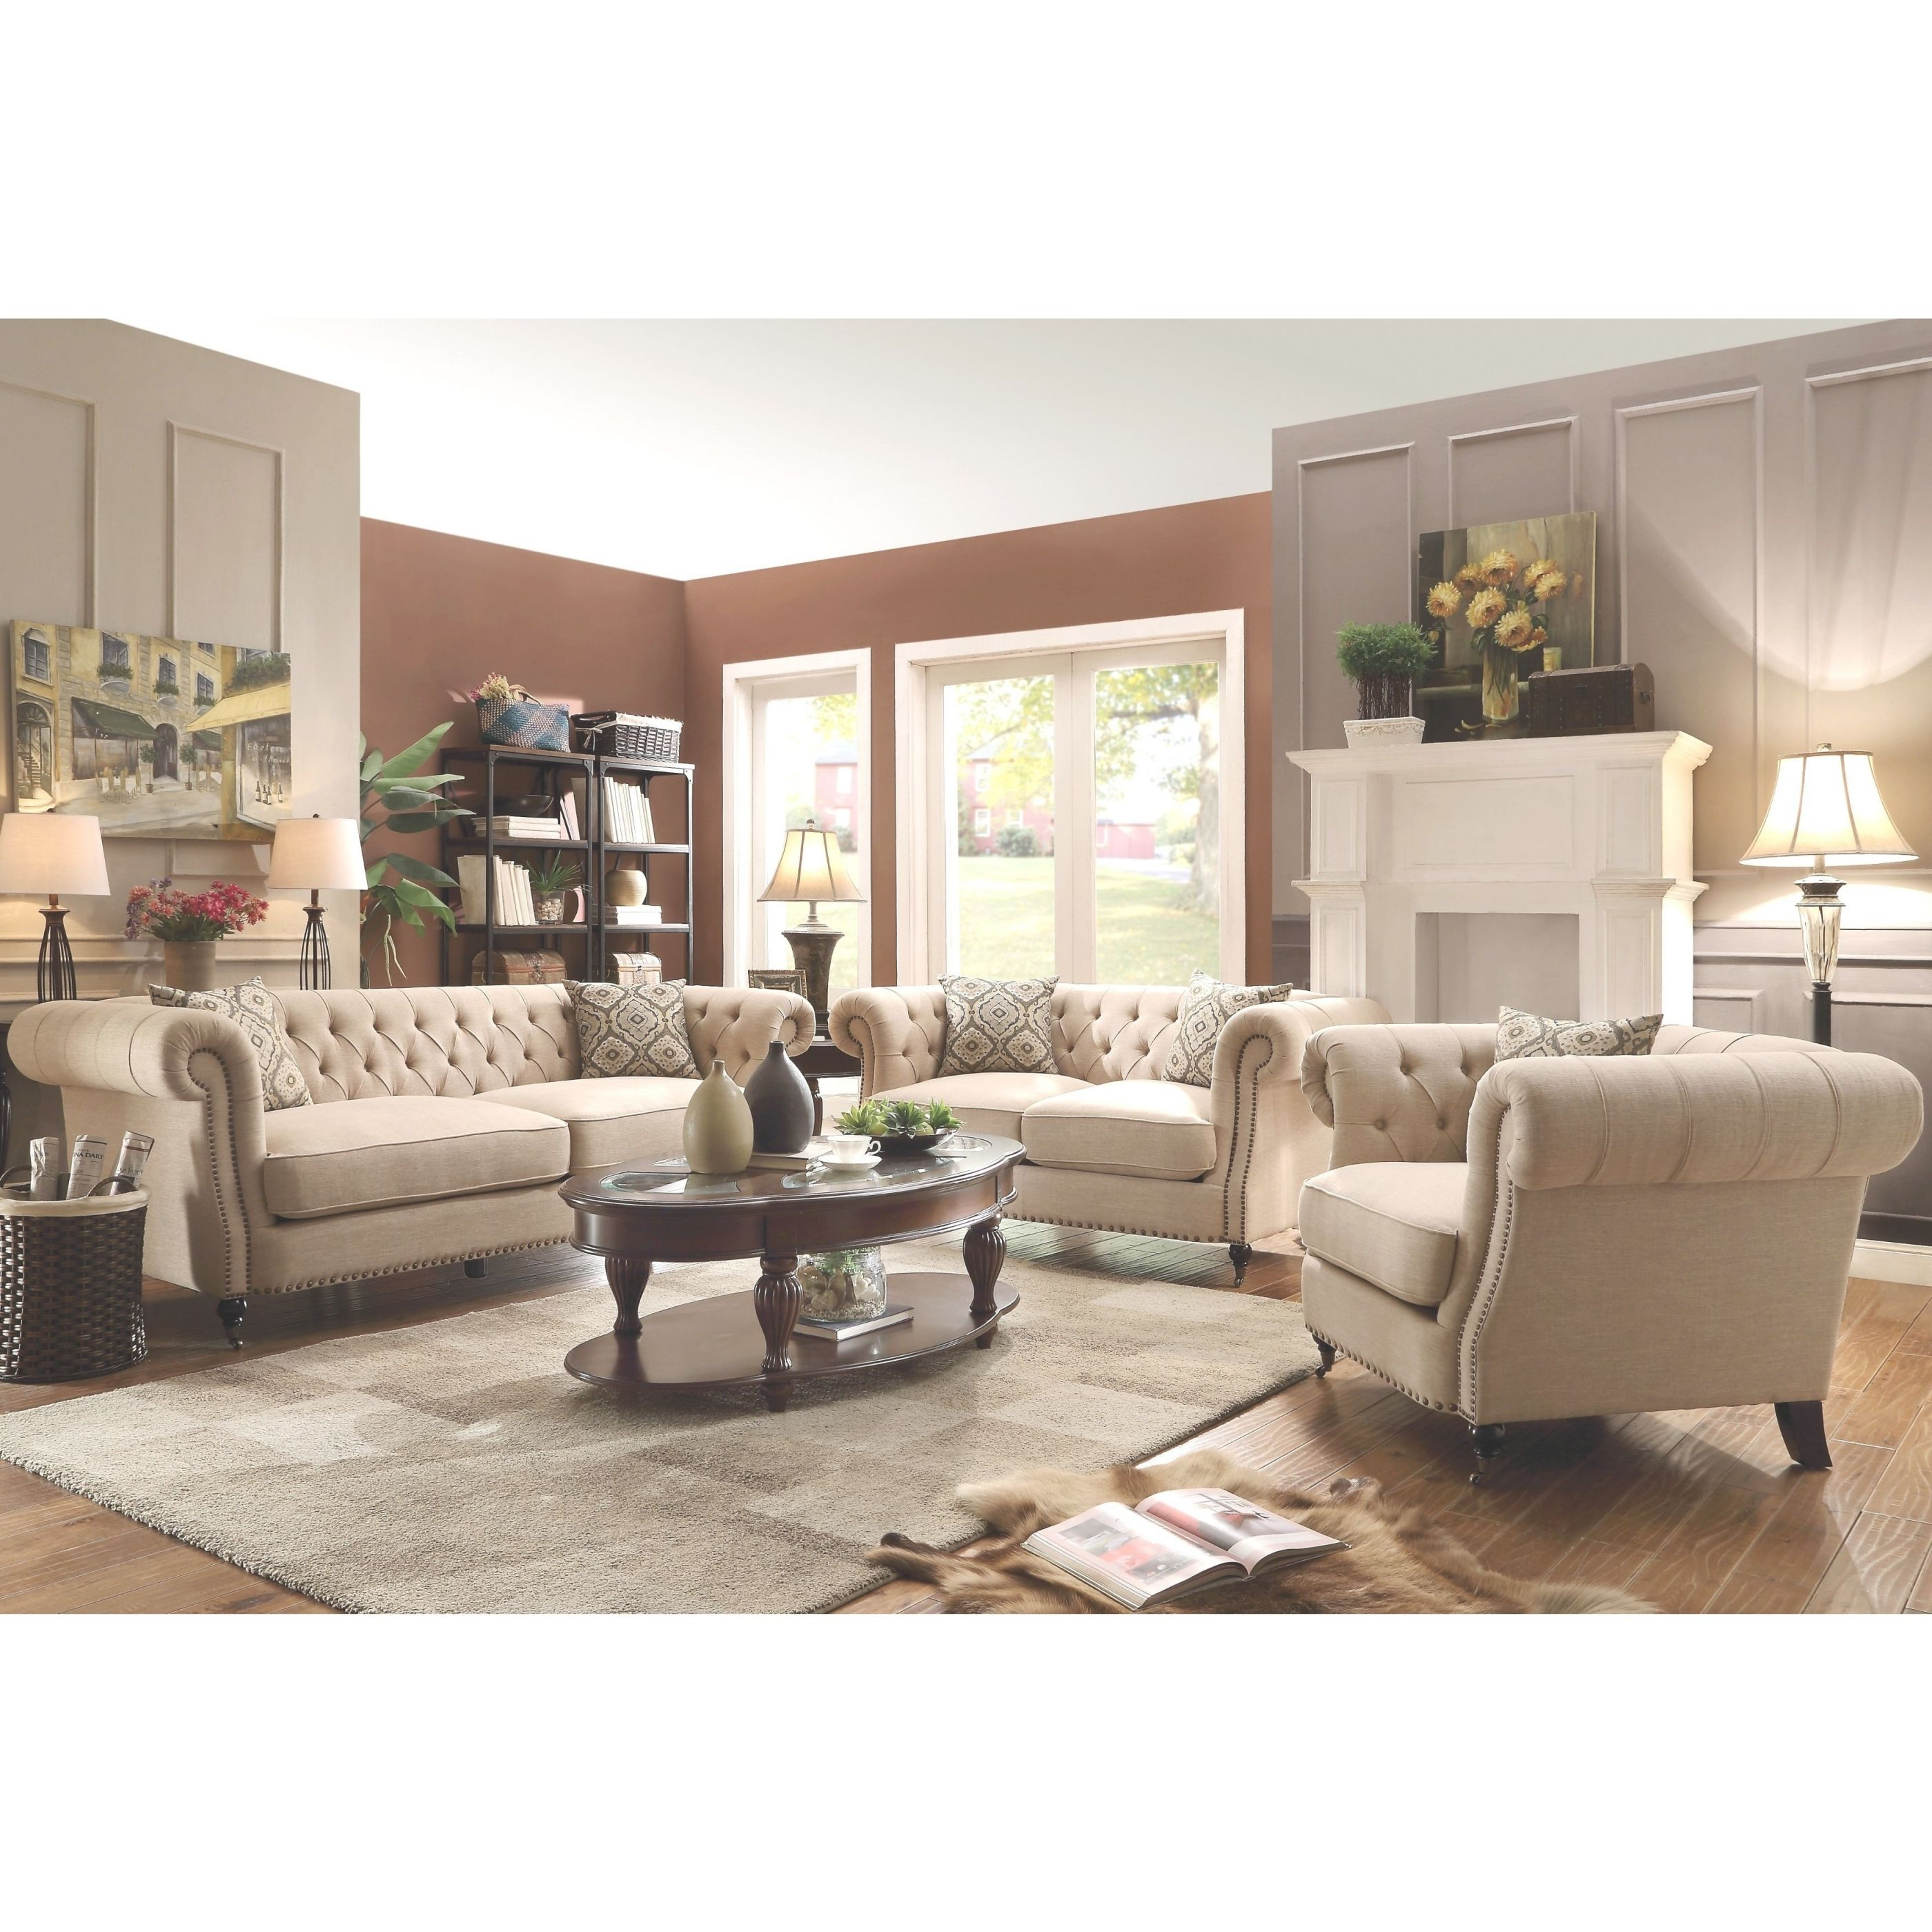 Mid-Century Posh Living Room Sofa Collection With Tufted Design And Nailhead Trim within Unique Tufted Living Room Furniture